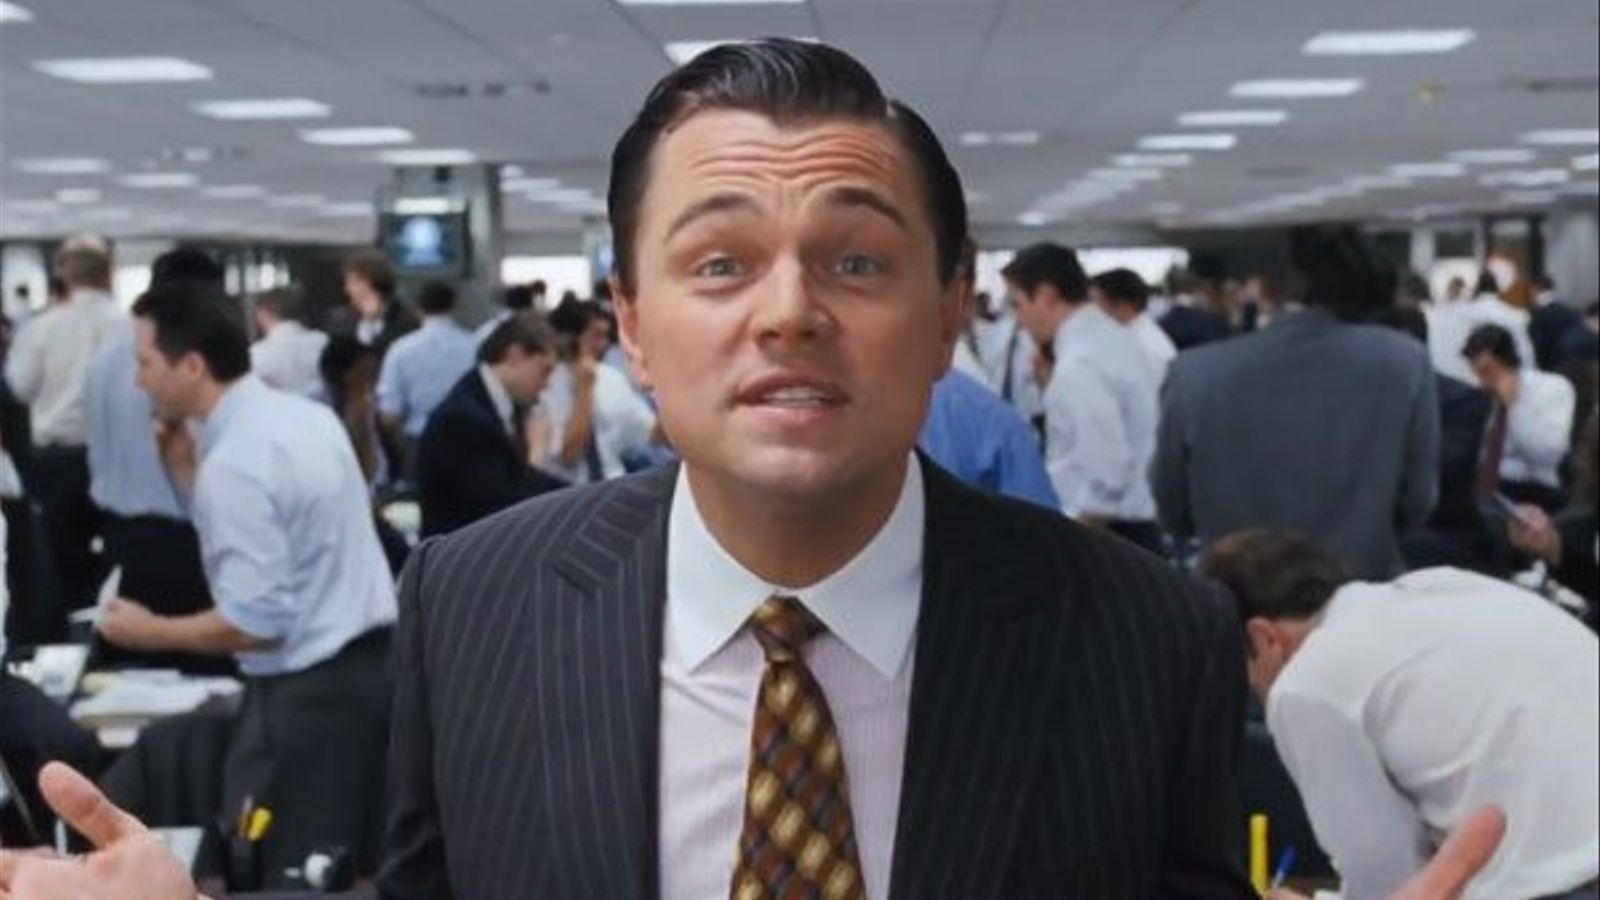 Tràiler de 'The wolf of Wall Street', de Martin Scorsese